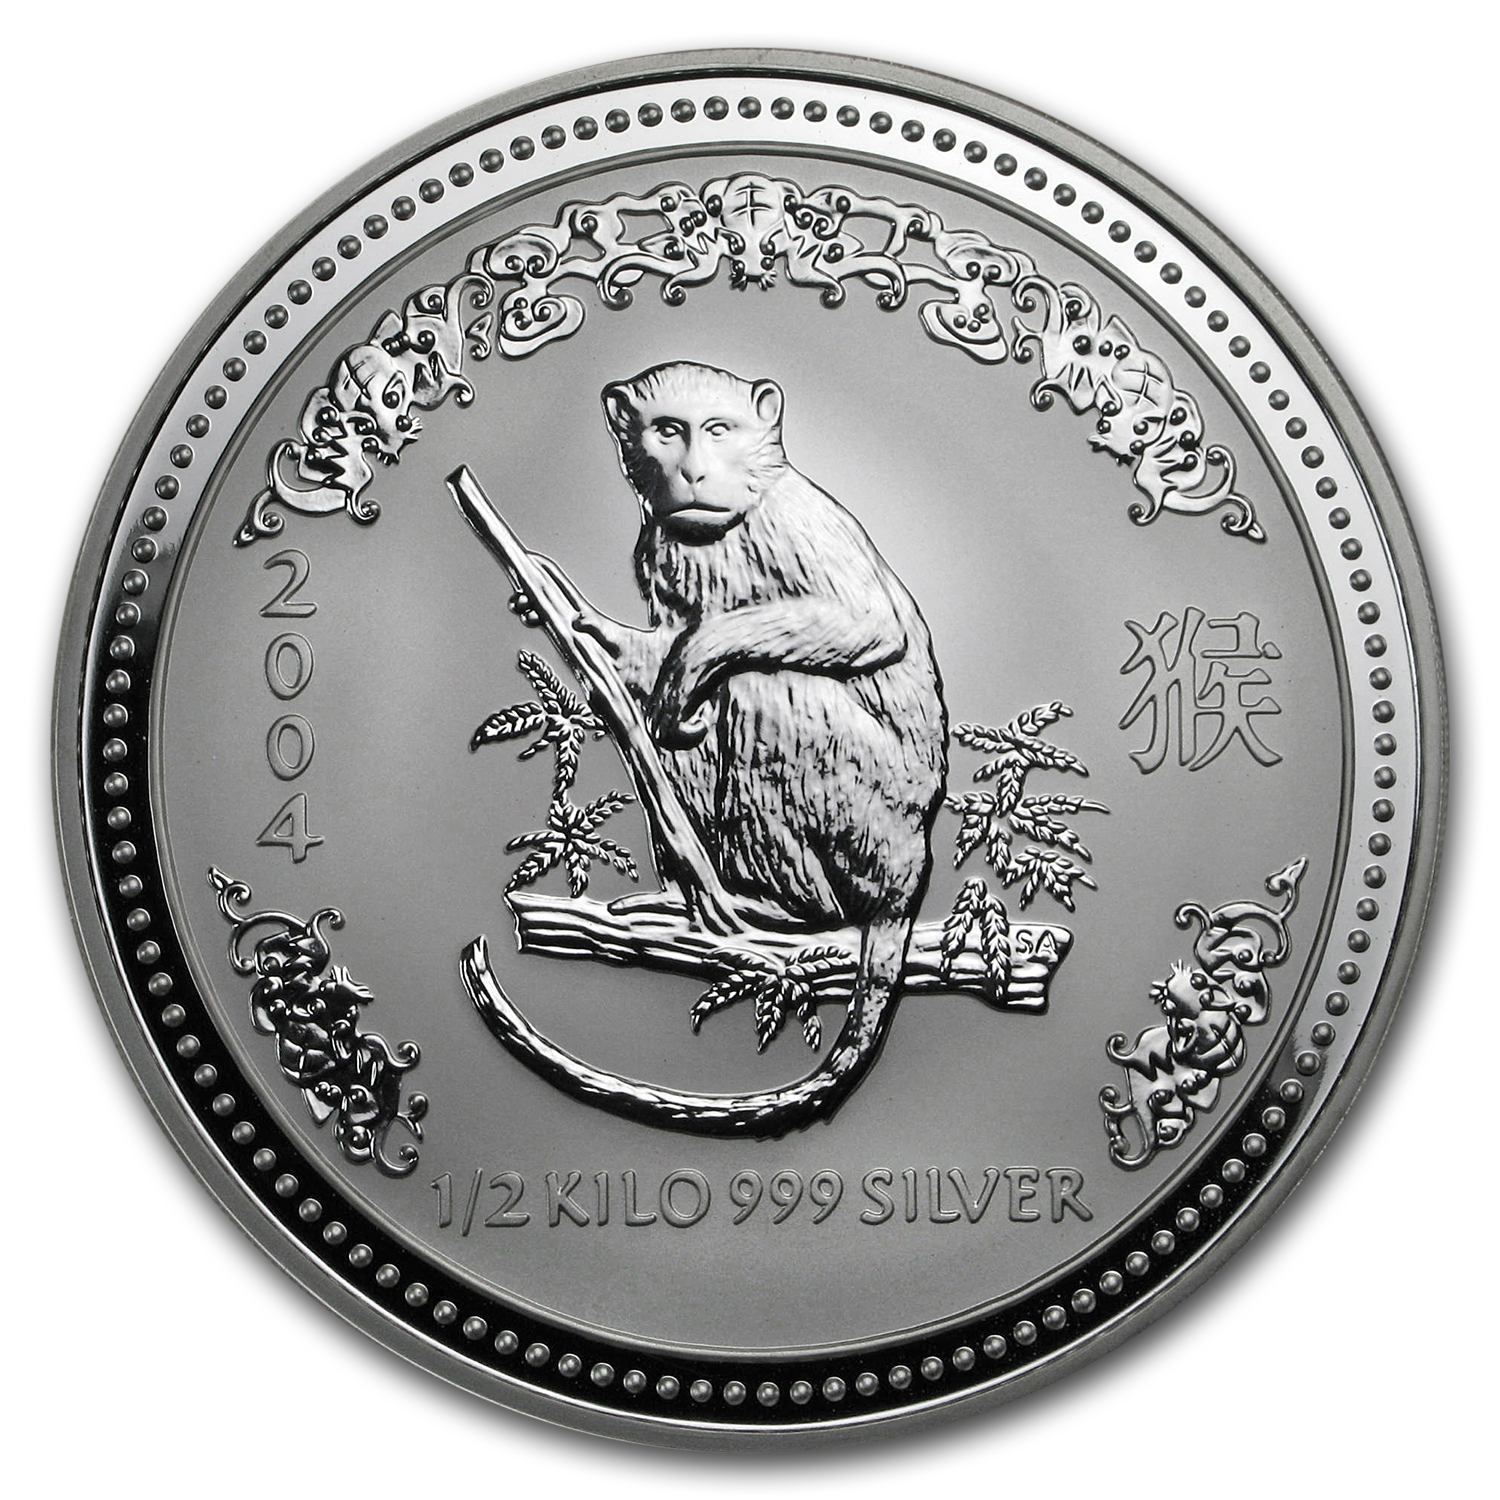 2004 1/2 Kilo Silver Australian Year of the Monkey BU